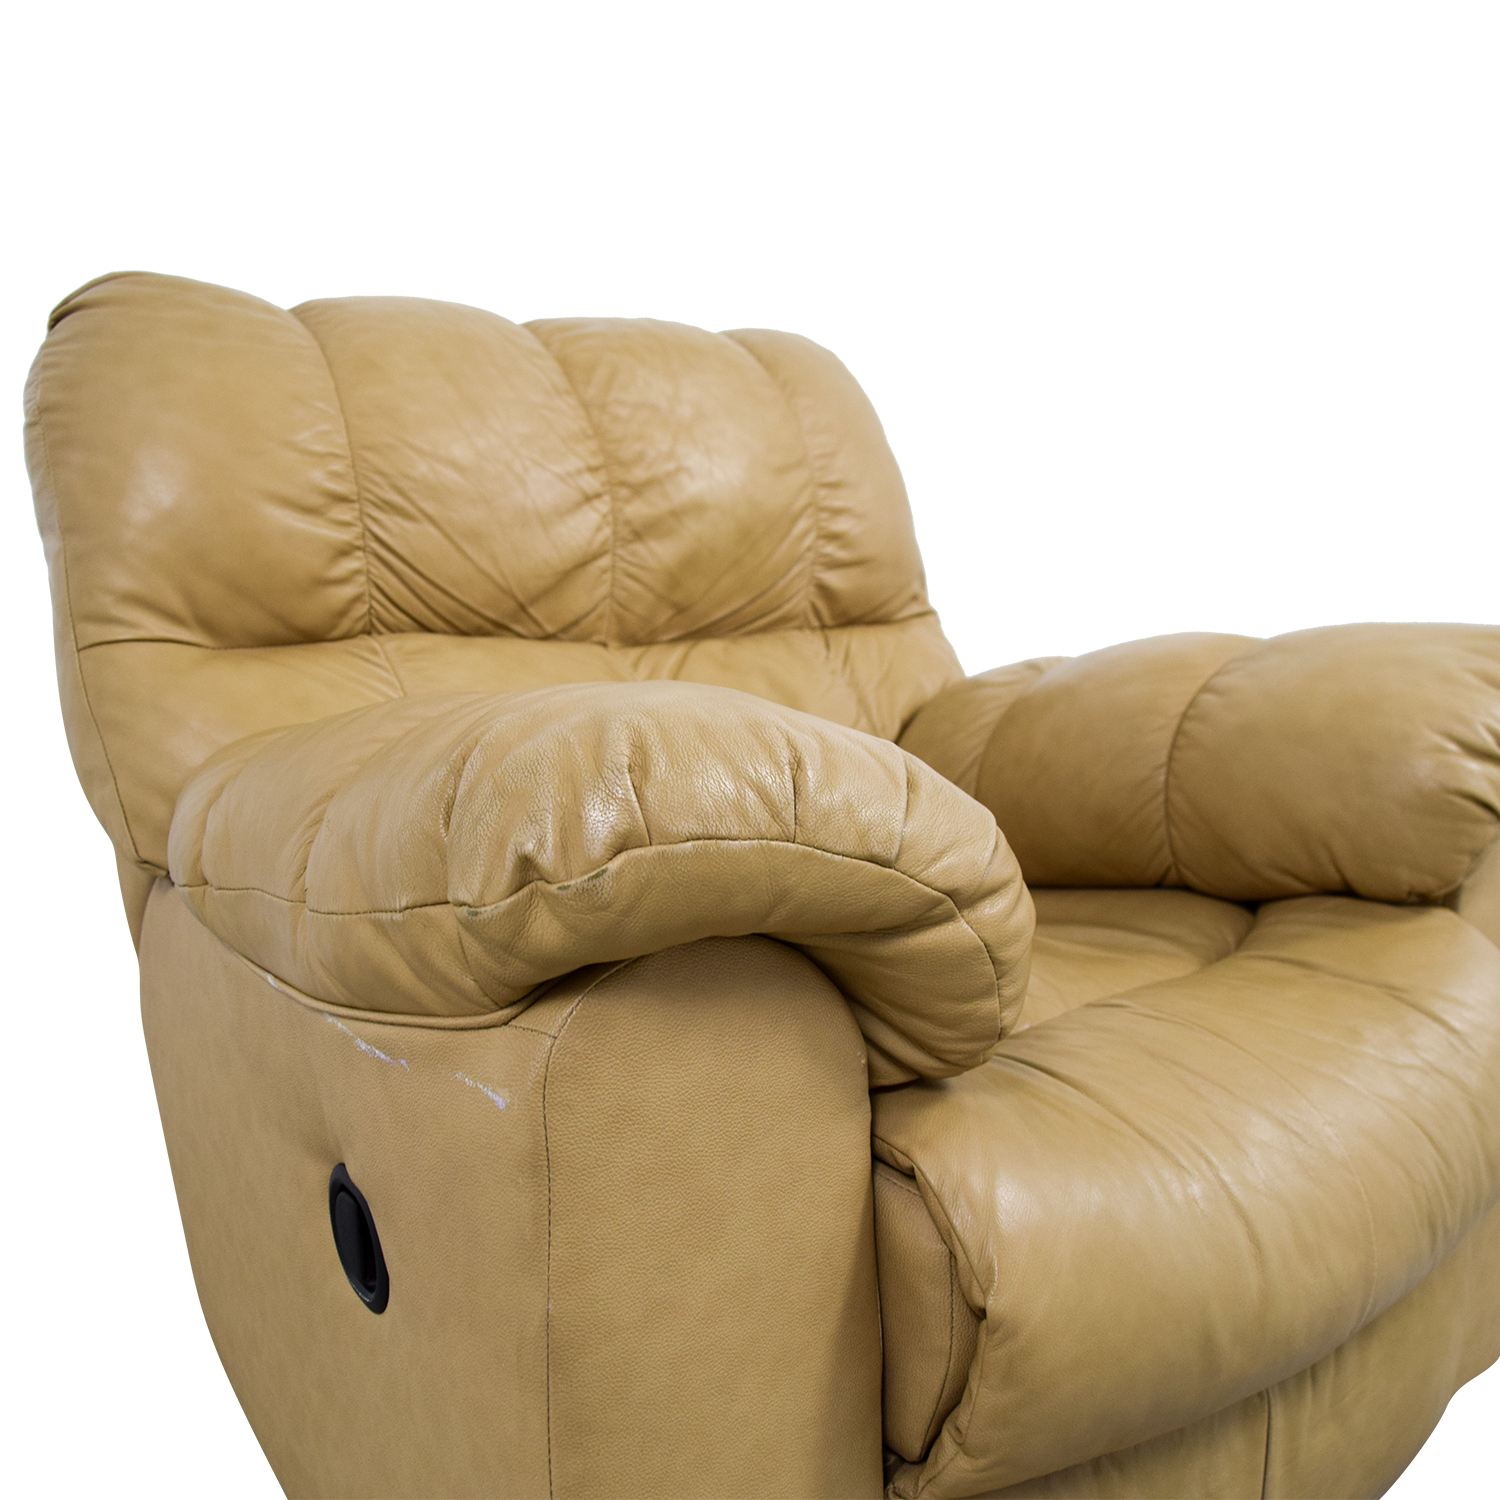 90 Off Ashley Furniture Ashley Furniture Tan Leather